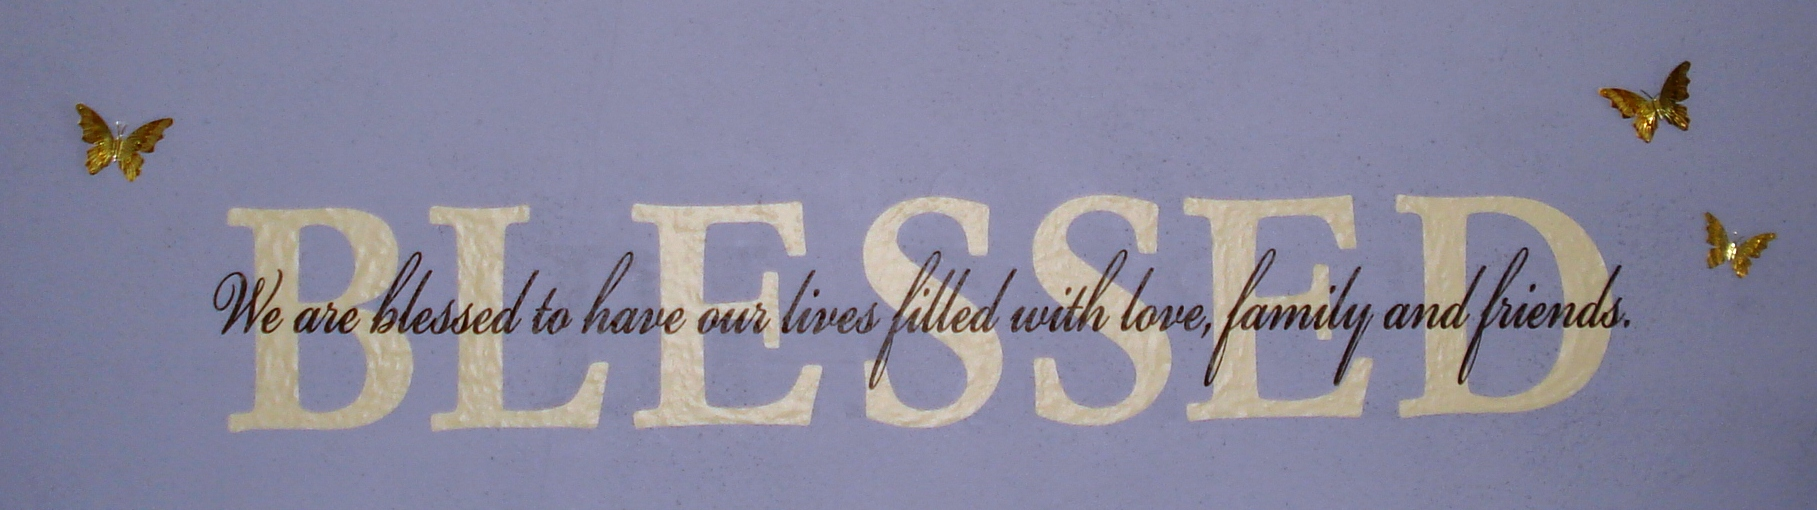 Bless Wall Graphic with blue background